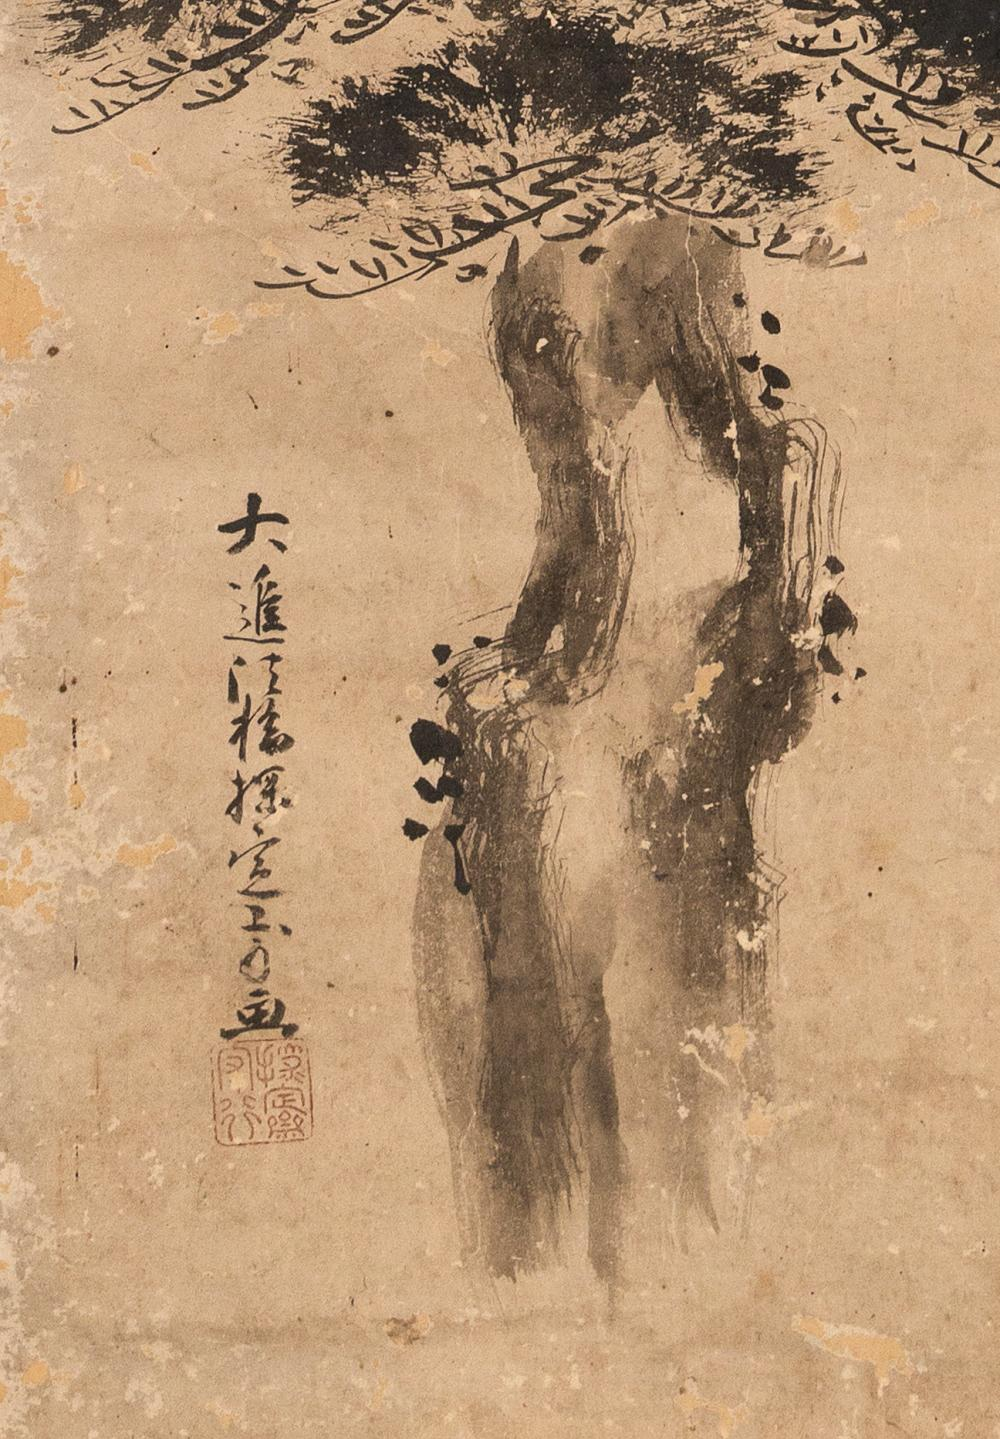 JAPANESE SCROLL PAINTING ON PAPER BY YAMAGI TANGU Depicts pine trees and a rising sun. 47